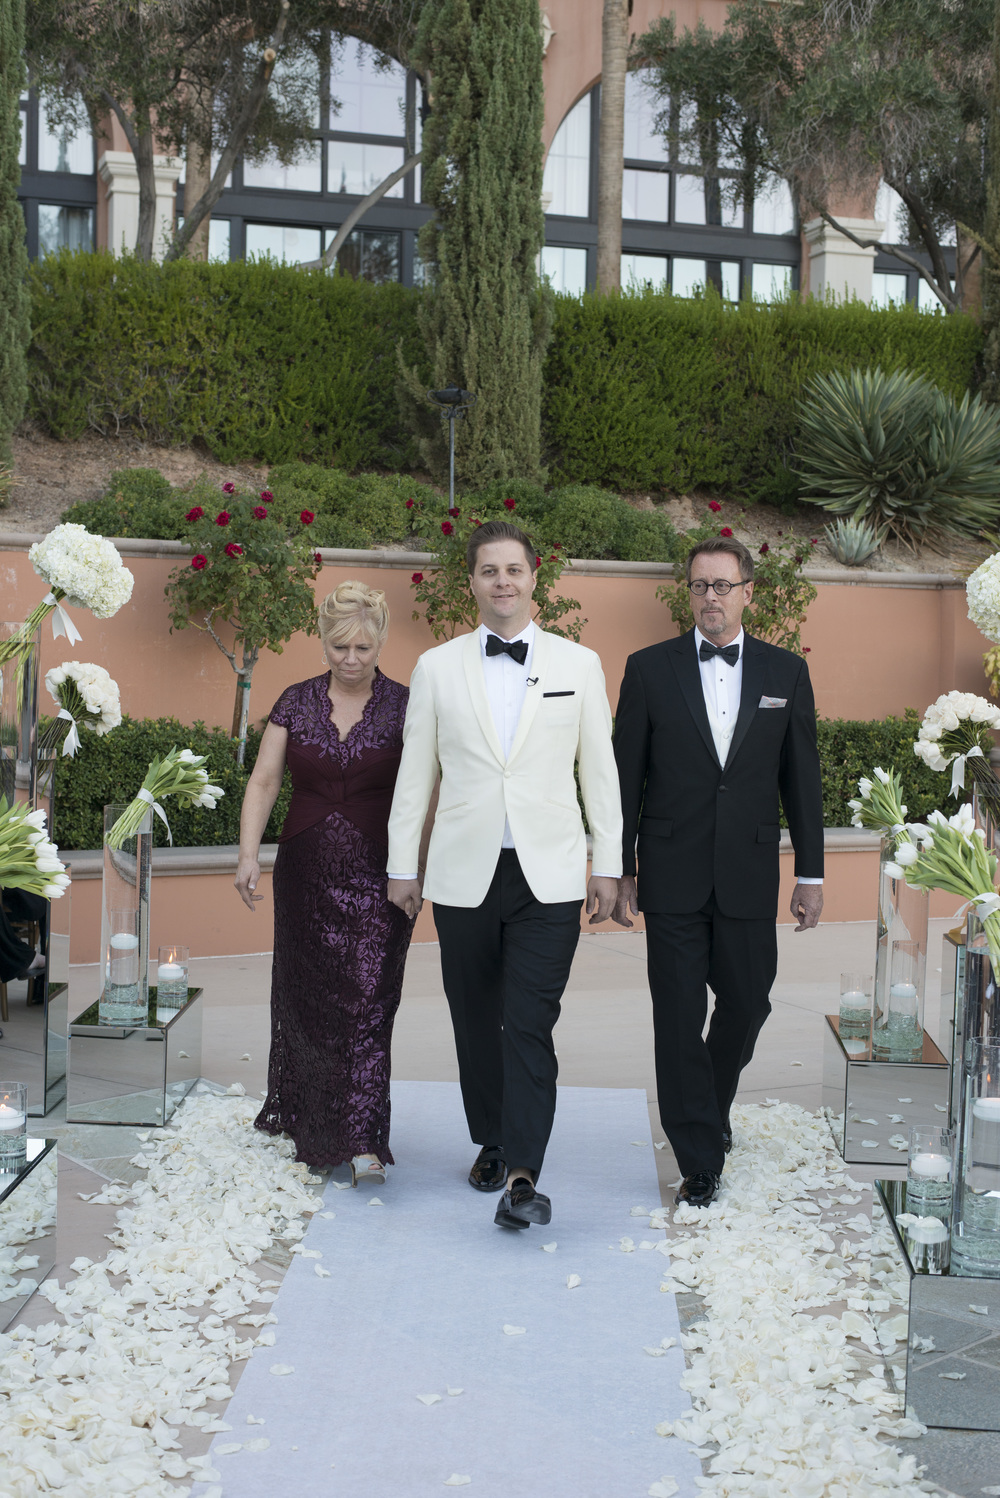 Groom is escorted by his mother and father.  Vendor Credits: Las Vegas Wedding Planner:  Andrea Eppolito Events  | Venue: The Westin Lake Las Vegas  |  Floral & Decor:  Flora Couture |  Photography:  Altf Photography  |  Videography: Something New Films  | Wedding Cake:  Peridot Sweets  |  Beauty by:  Make Up in the 702  |  Wedding Gown: P'Nina Tornai  |  Veil: Kleinfeld New York  |  Shoes:  Christian Louboutin  |  Tuxedo:  Men's Warehouse